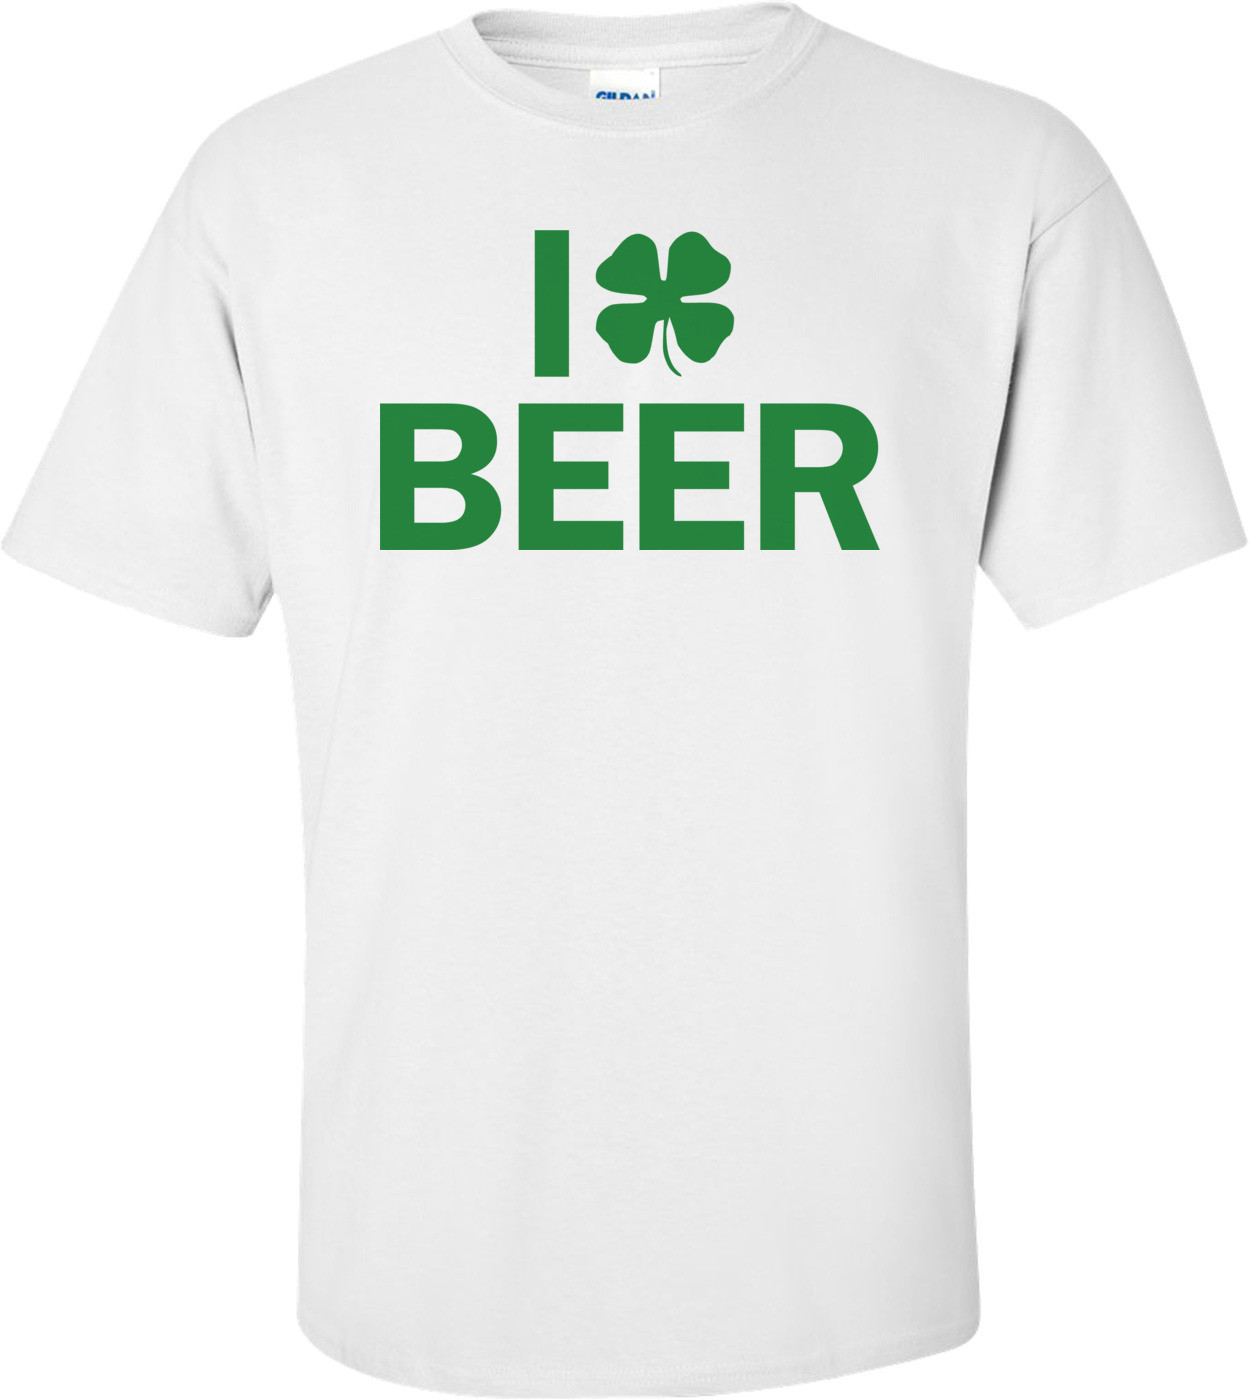 I Clover Beer St. Patrick's Day Shirt